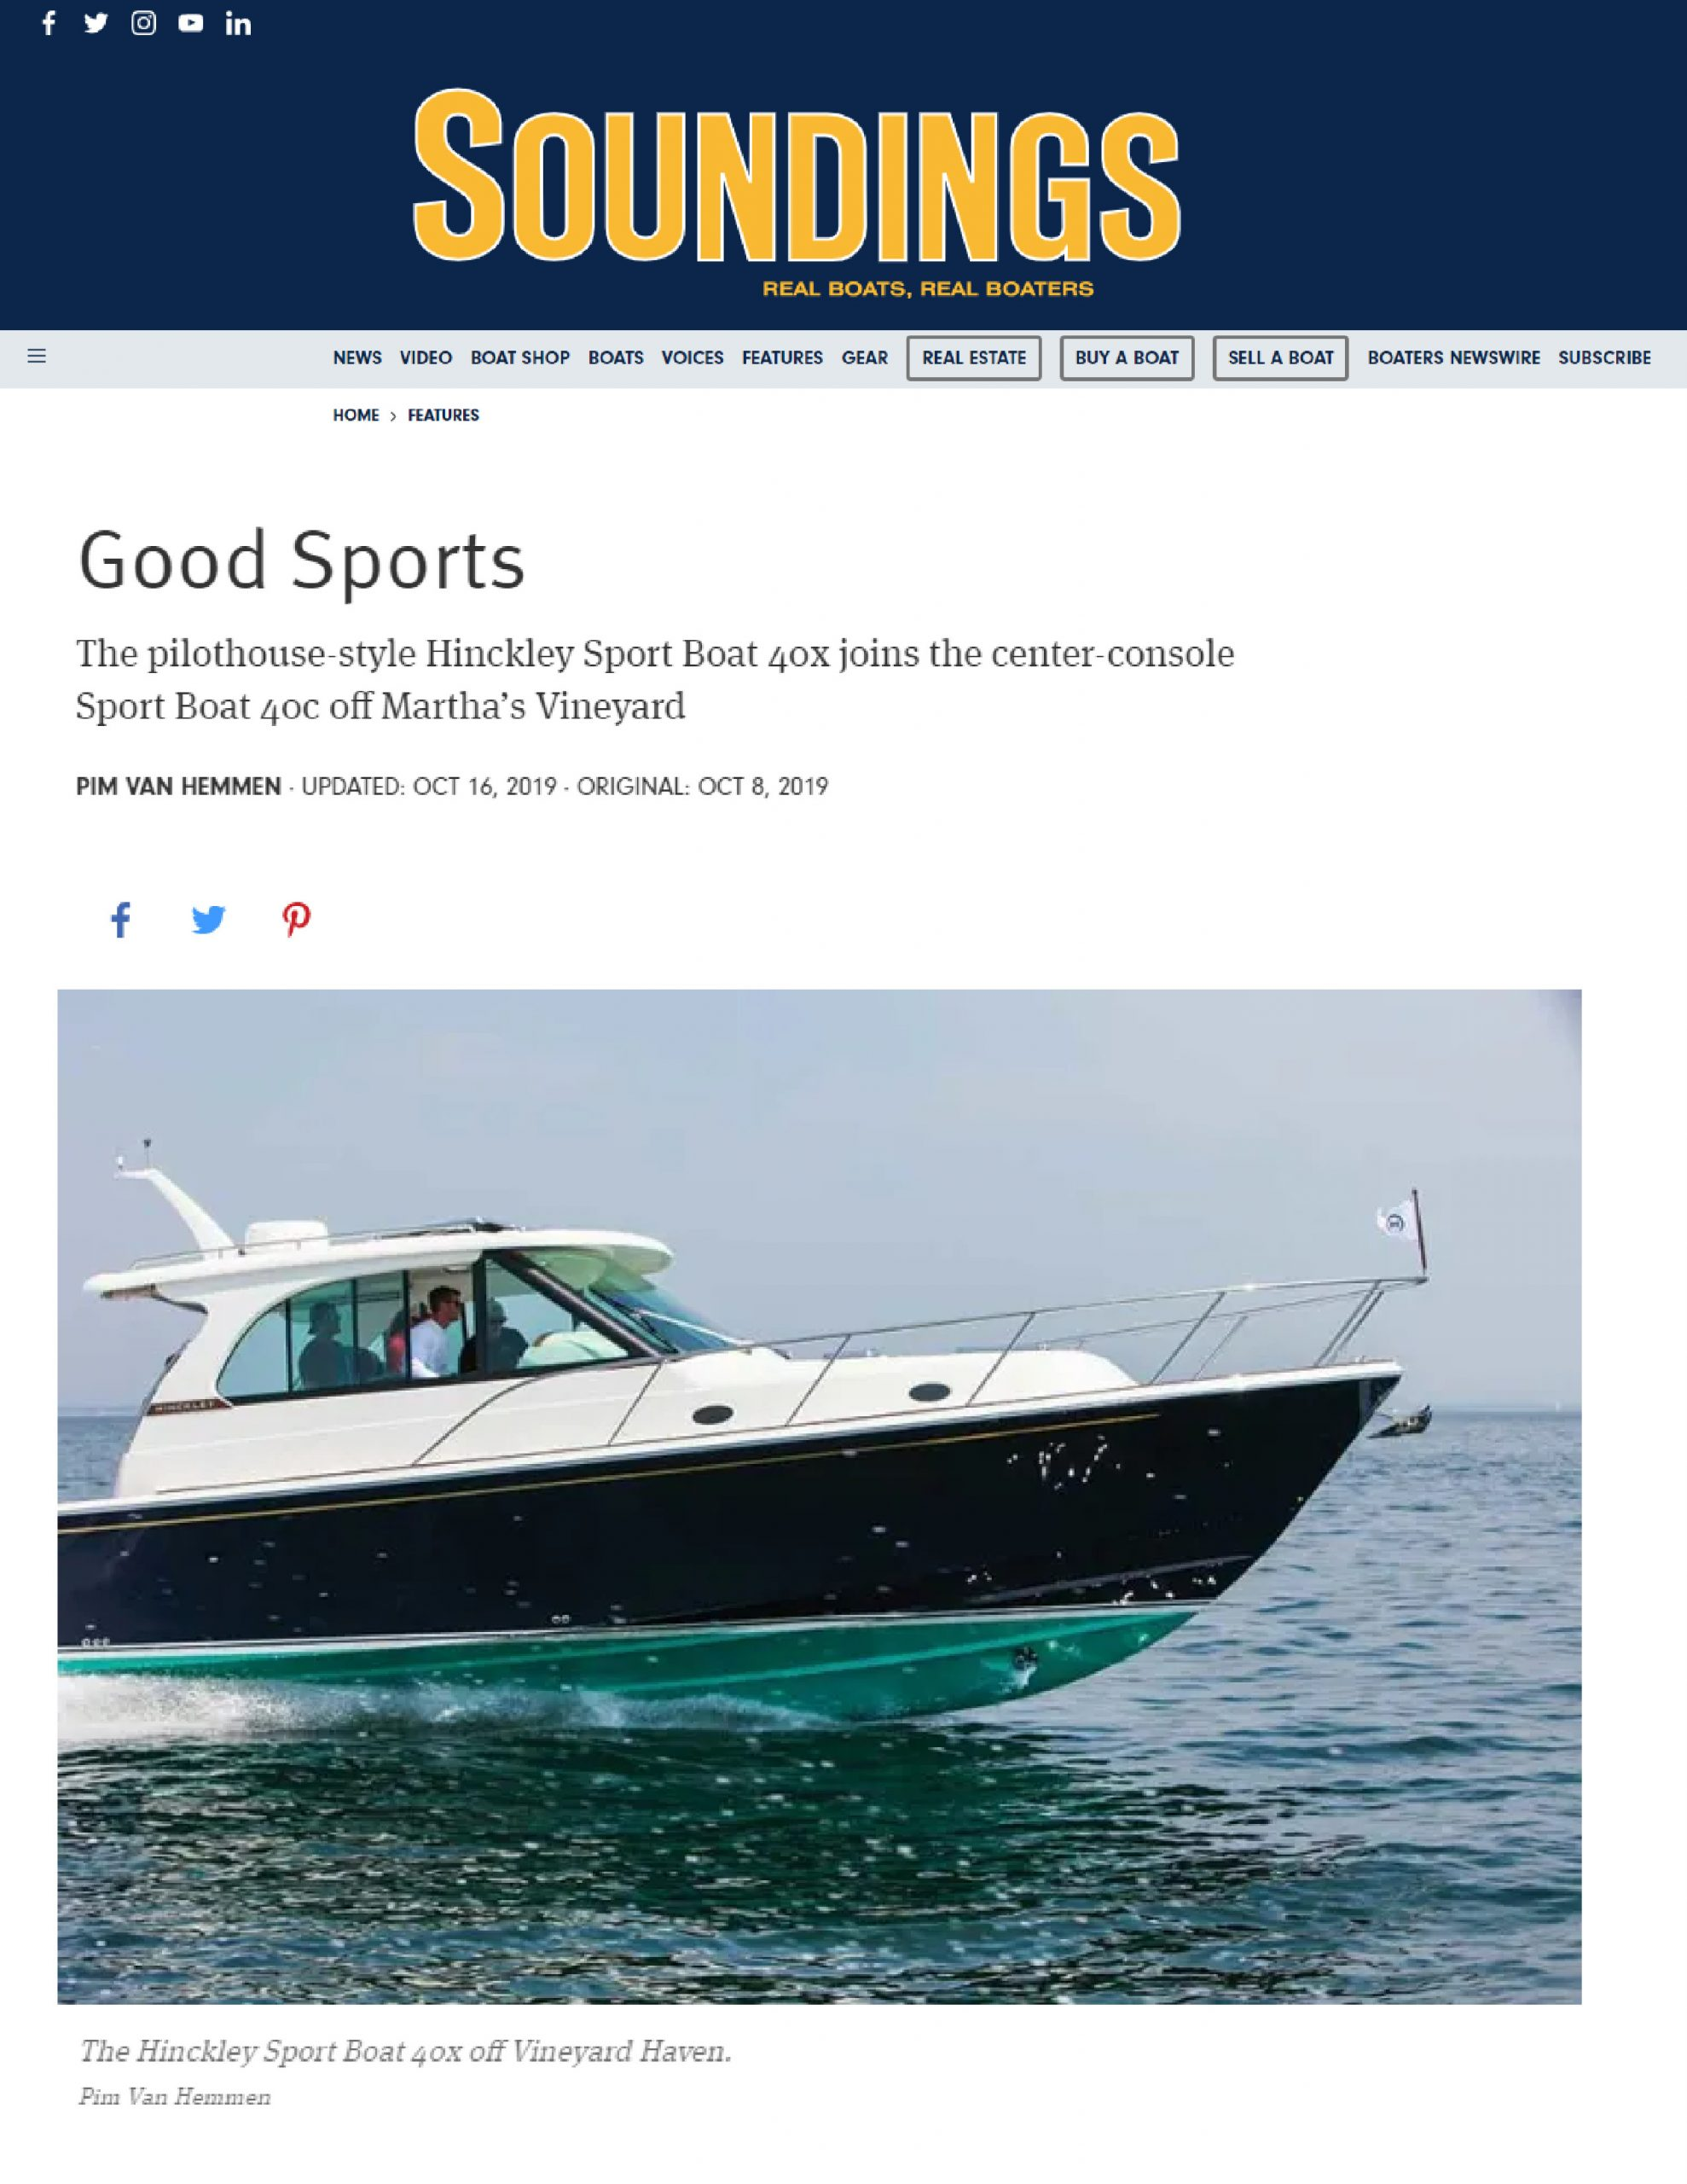 Hinckley Sport Boats Featured on Soundings | October 2019